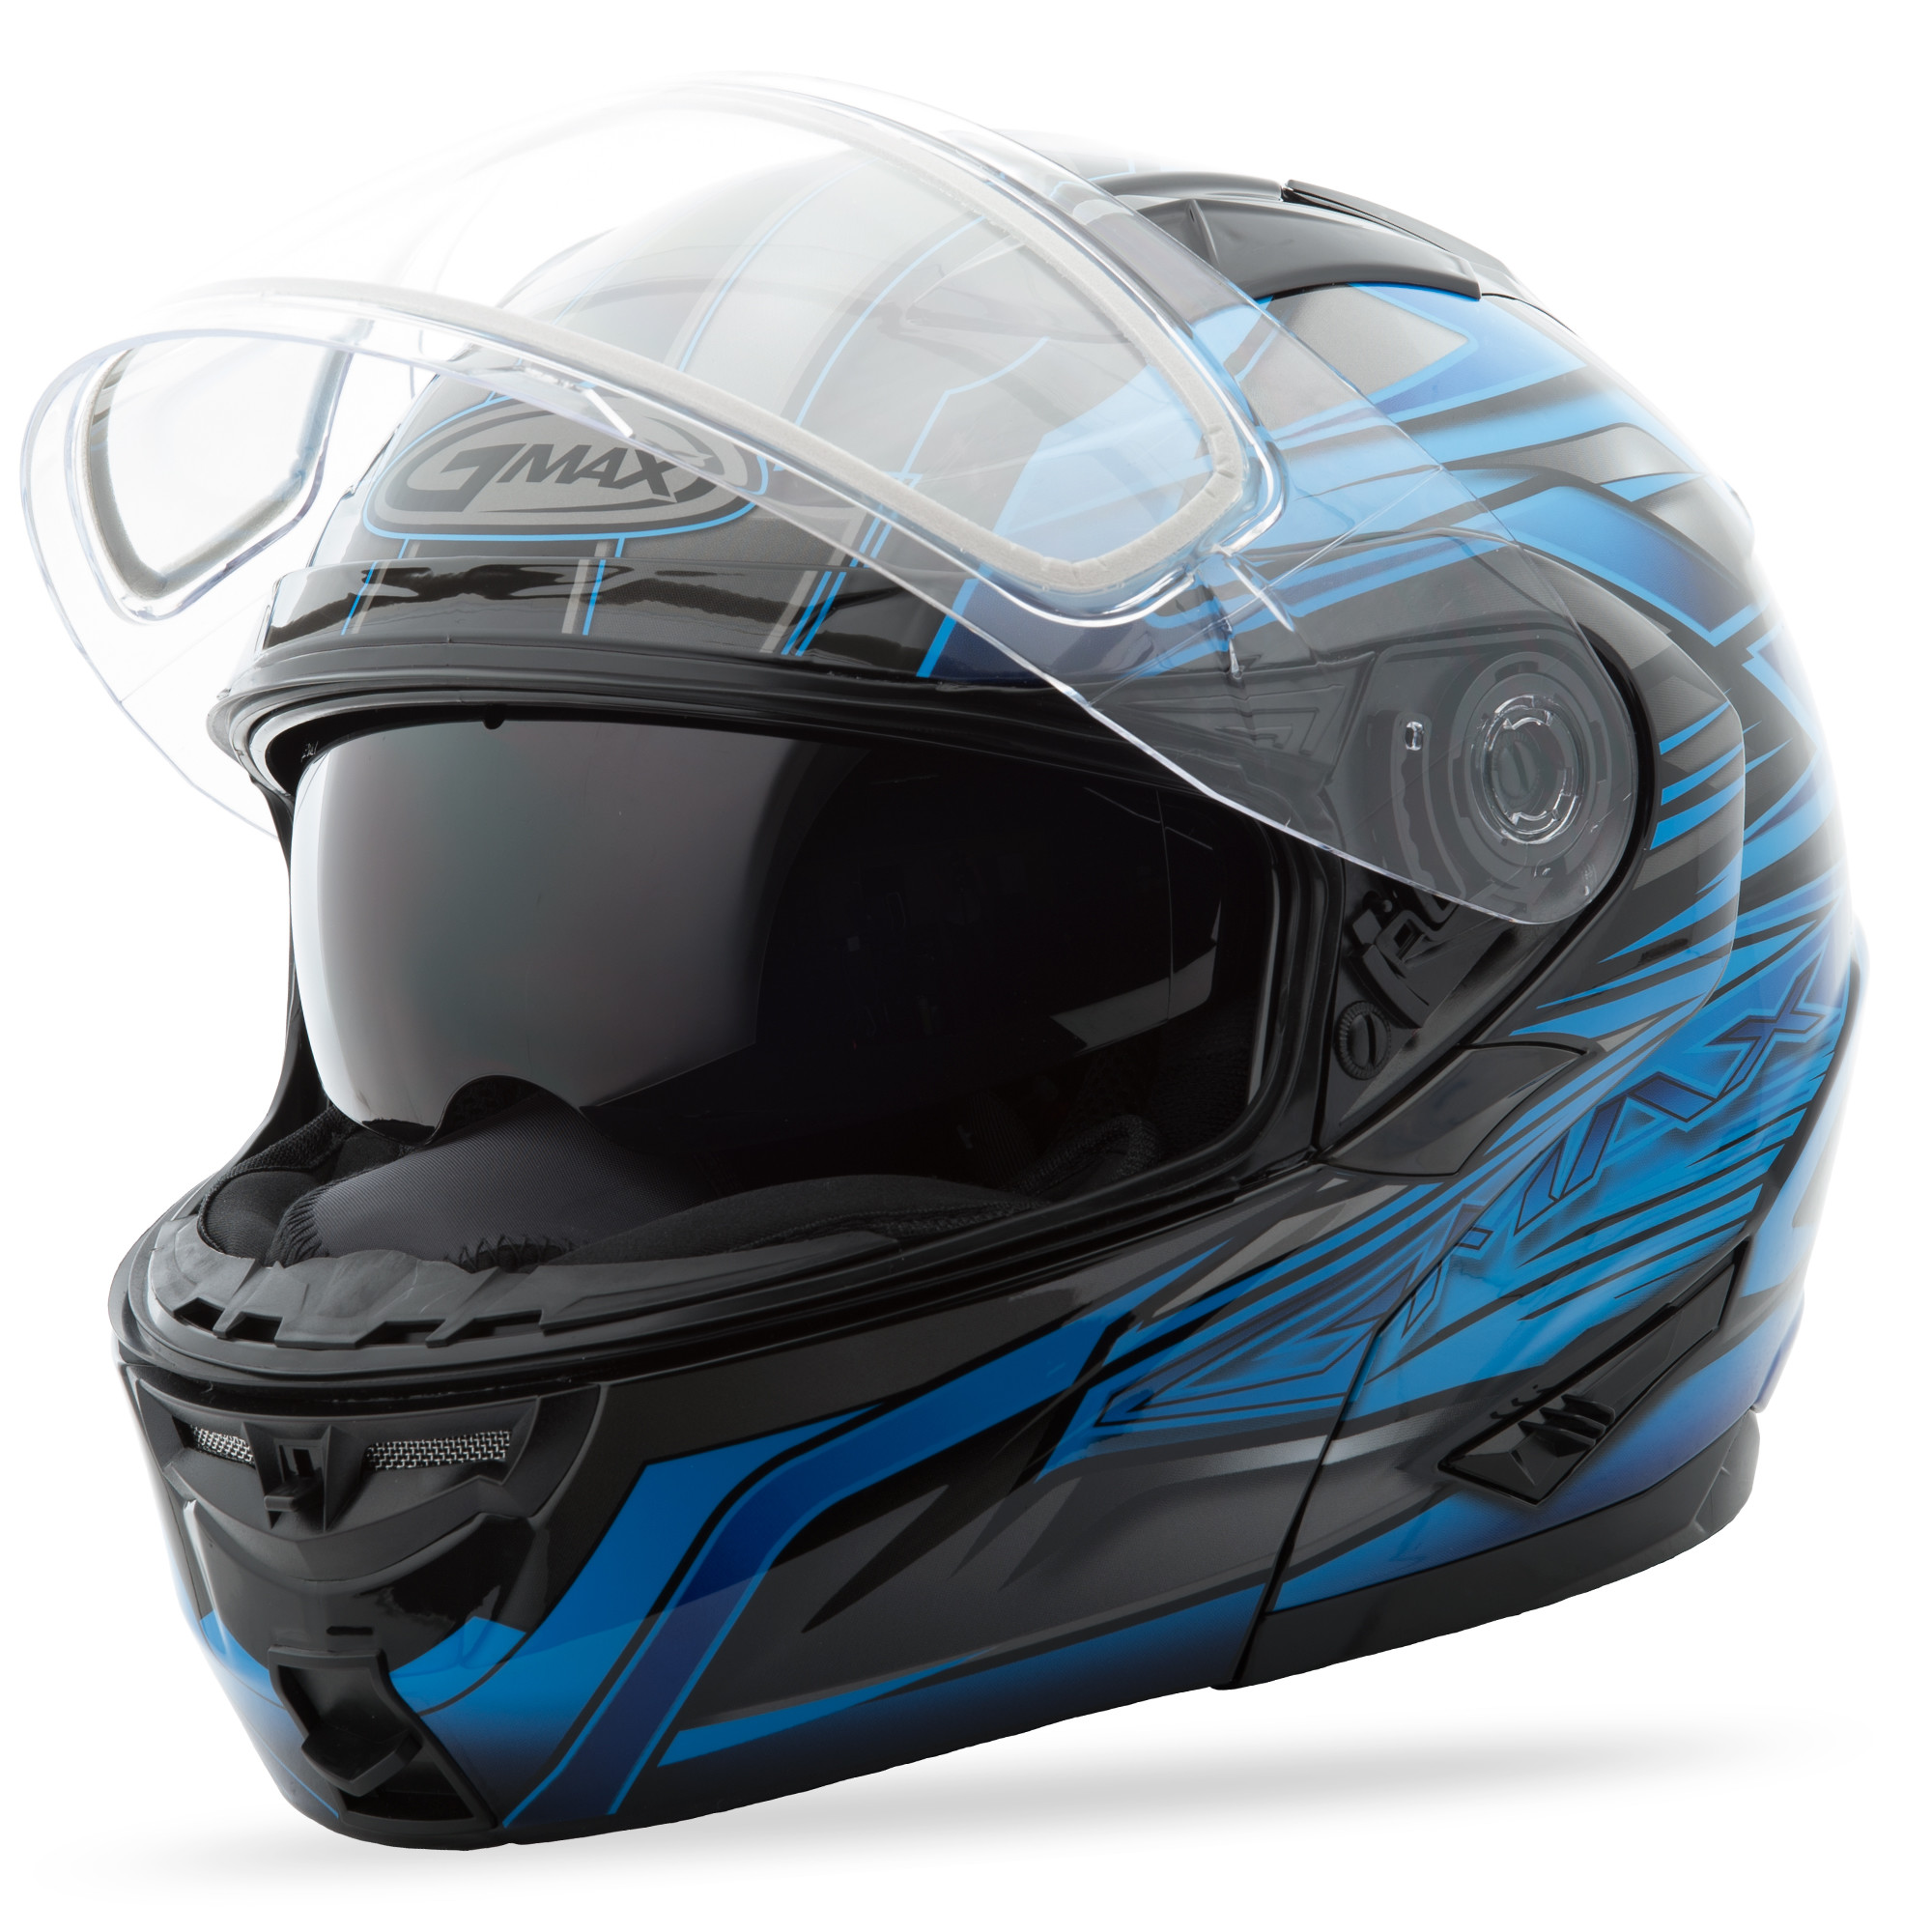 G-Max GM64S Carbide Snow Helmets by G-Max